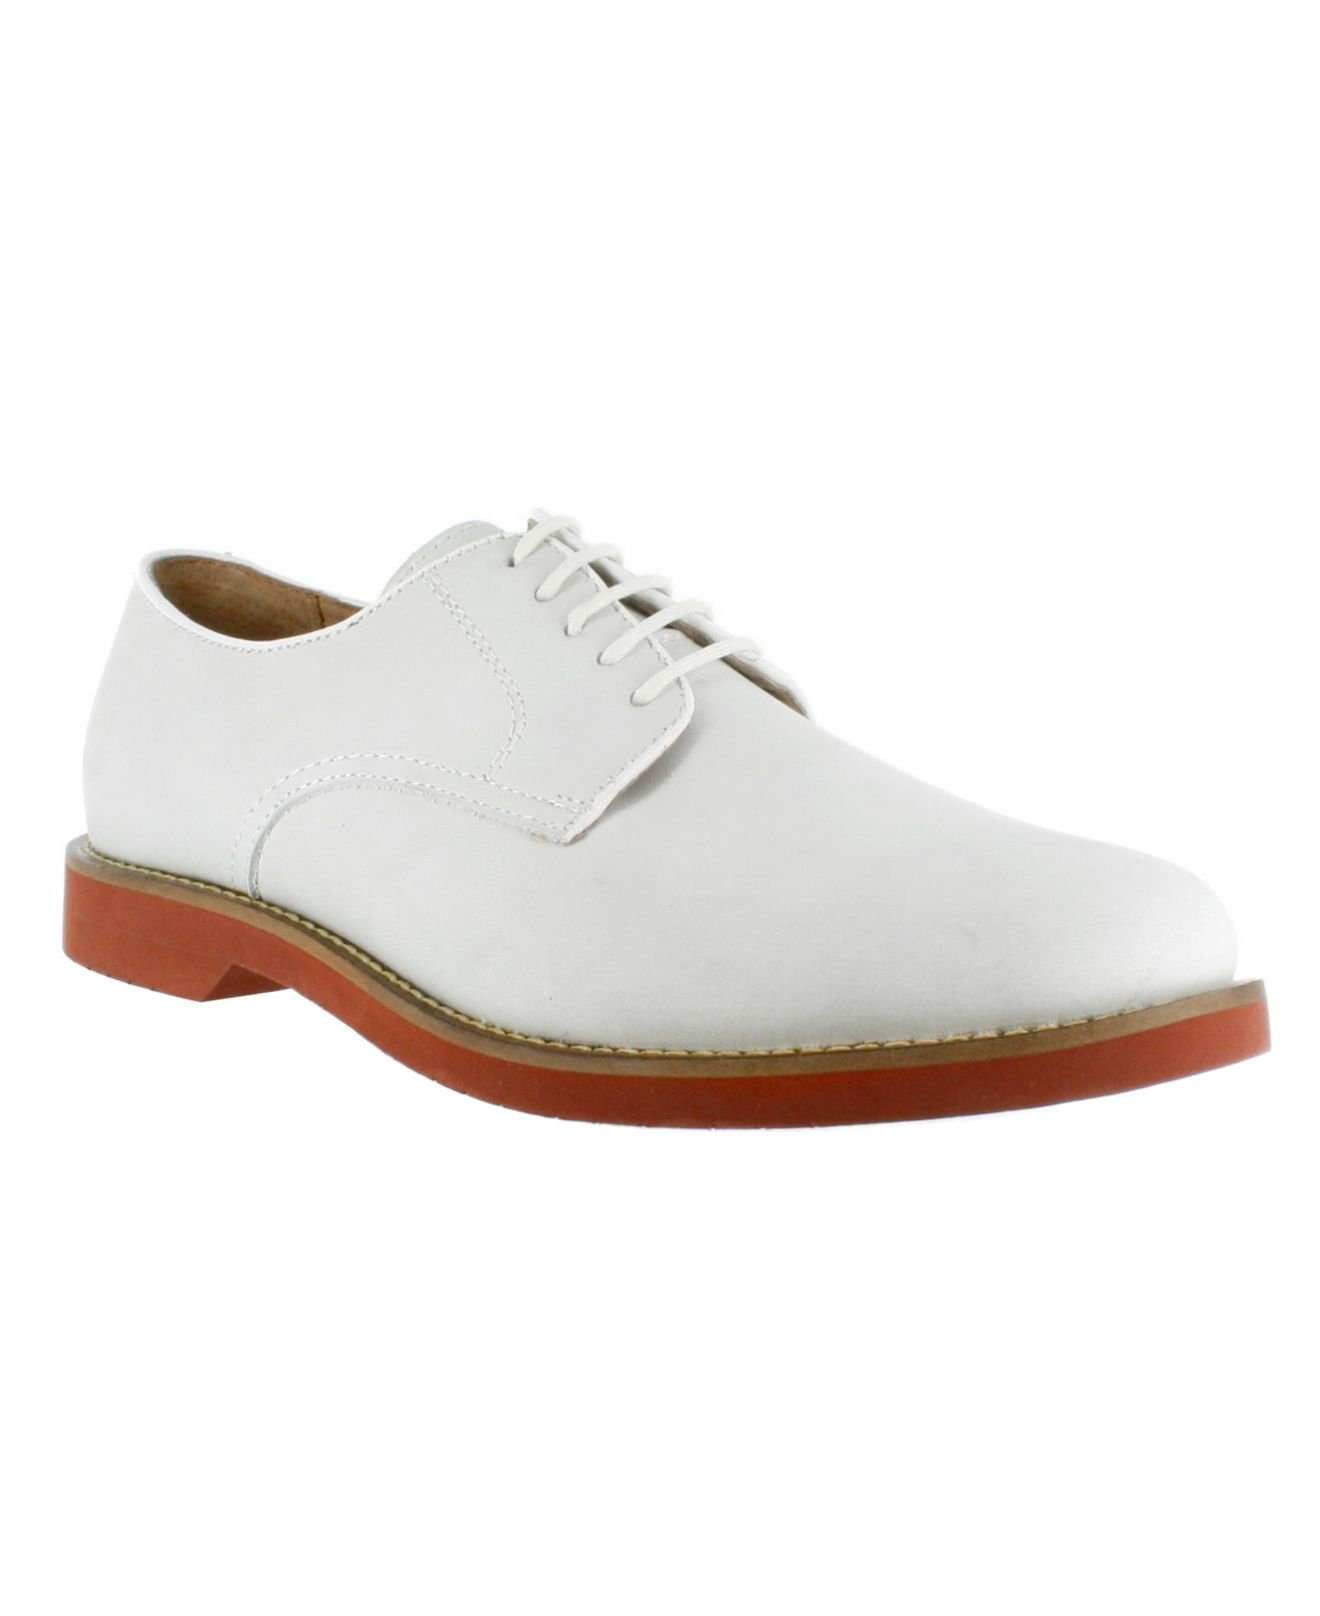 Lyst - G.H.BASS Buckingham Signature Buck Oxfords in White for Men fb0935a684fa